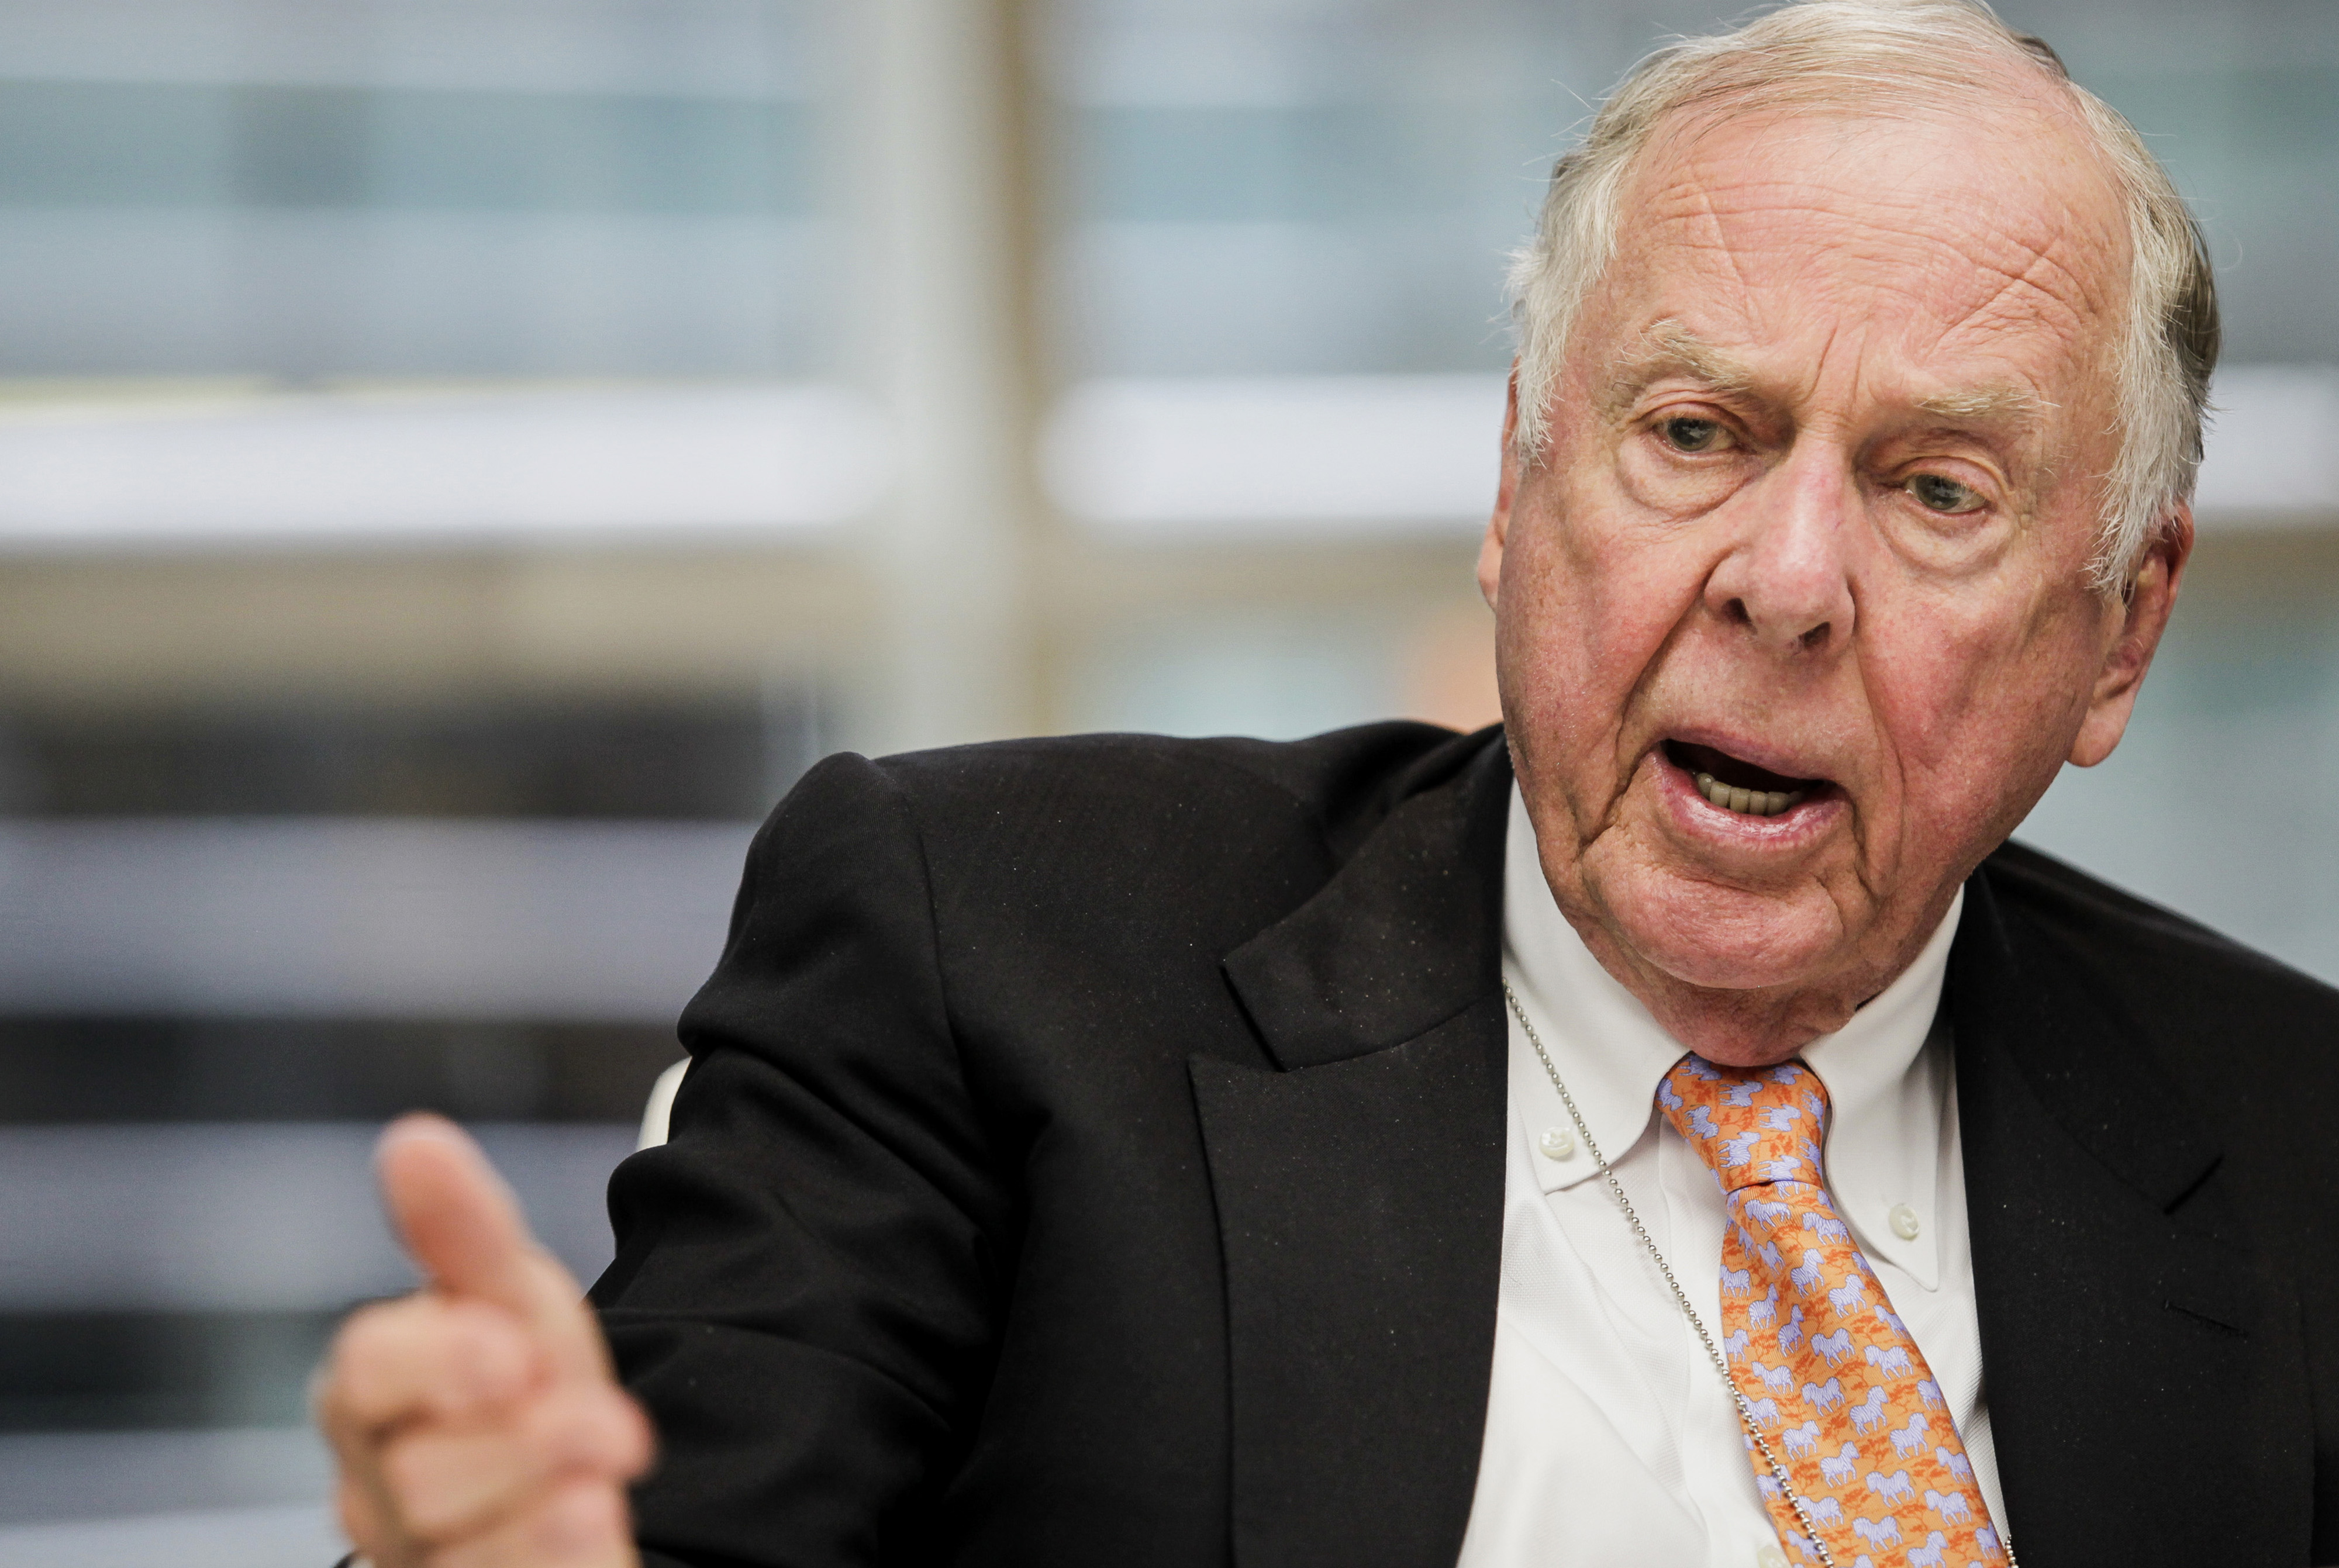 BP Capital Management LP Chief Executive Officer T. Boone Pickens Interview